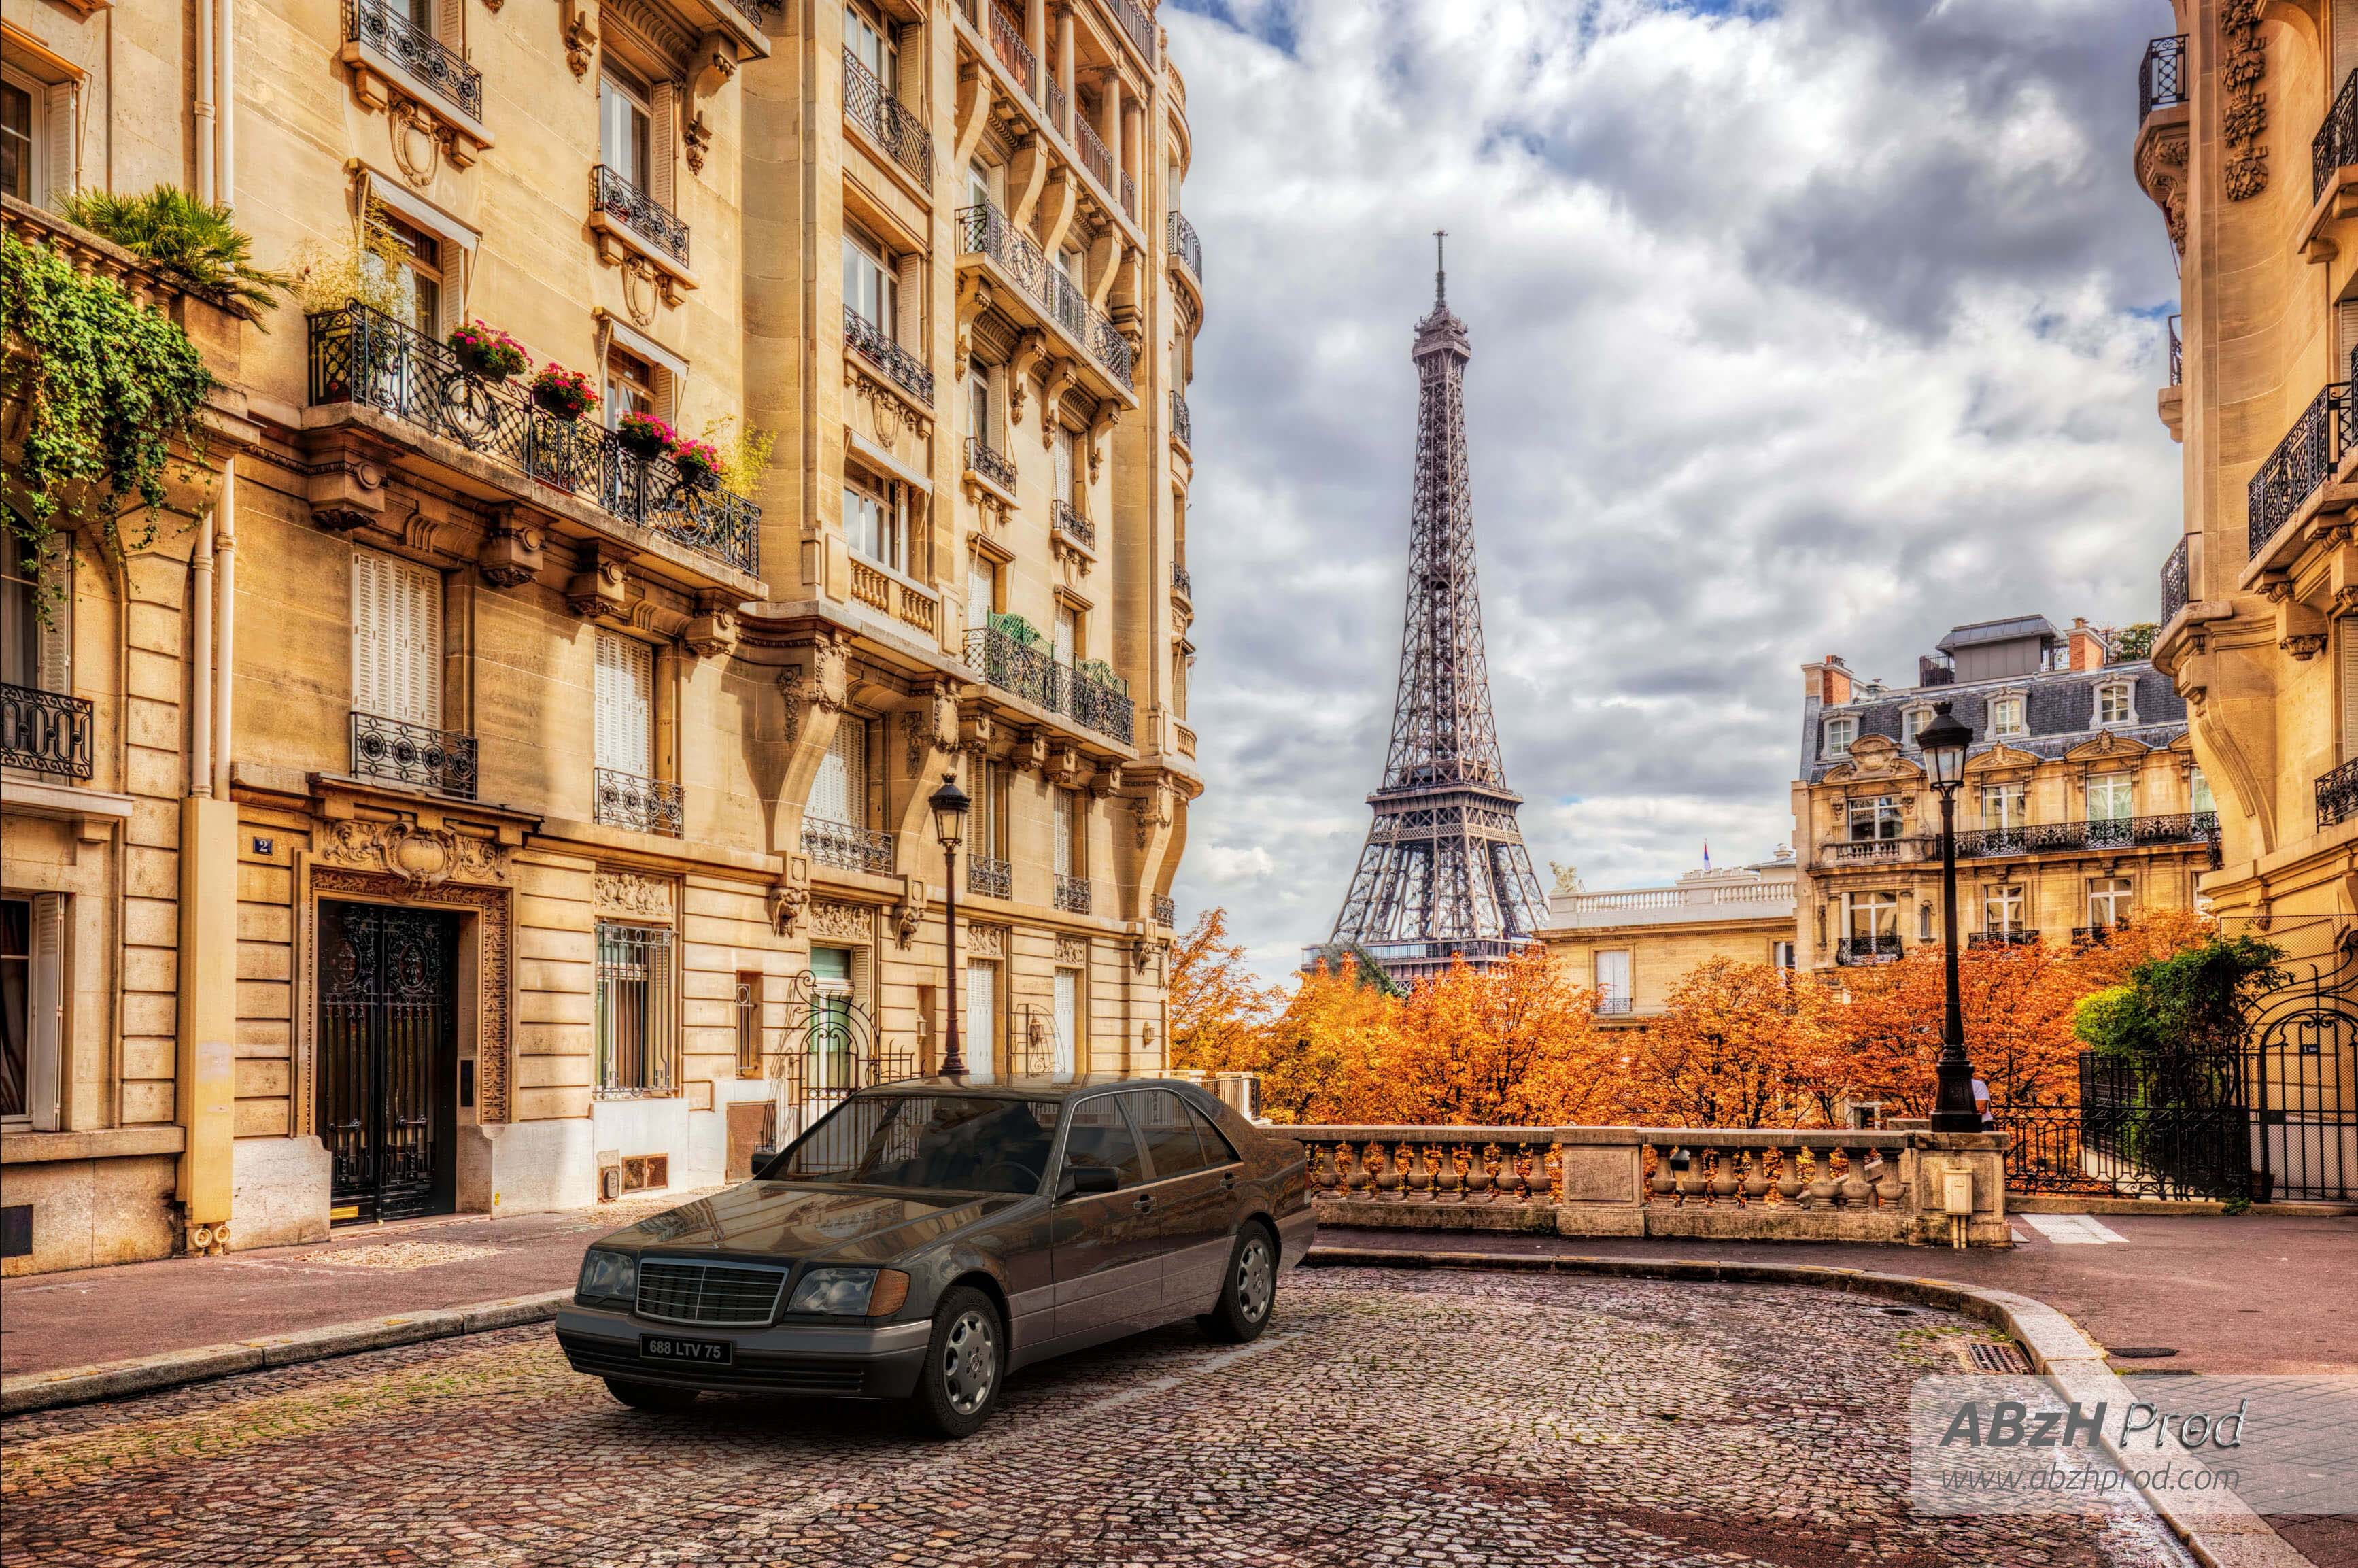 Mercedes S280 M6 Diana Paris Breakdown Tutorial - Animation vidéo 3D photoréaliste - Infographiste 3D Freelance - ABzHProd